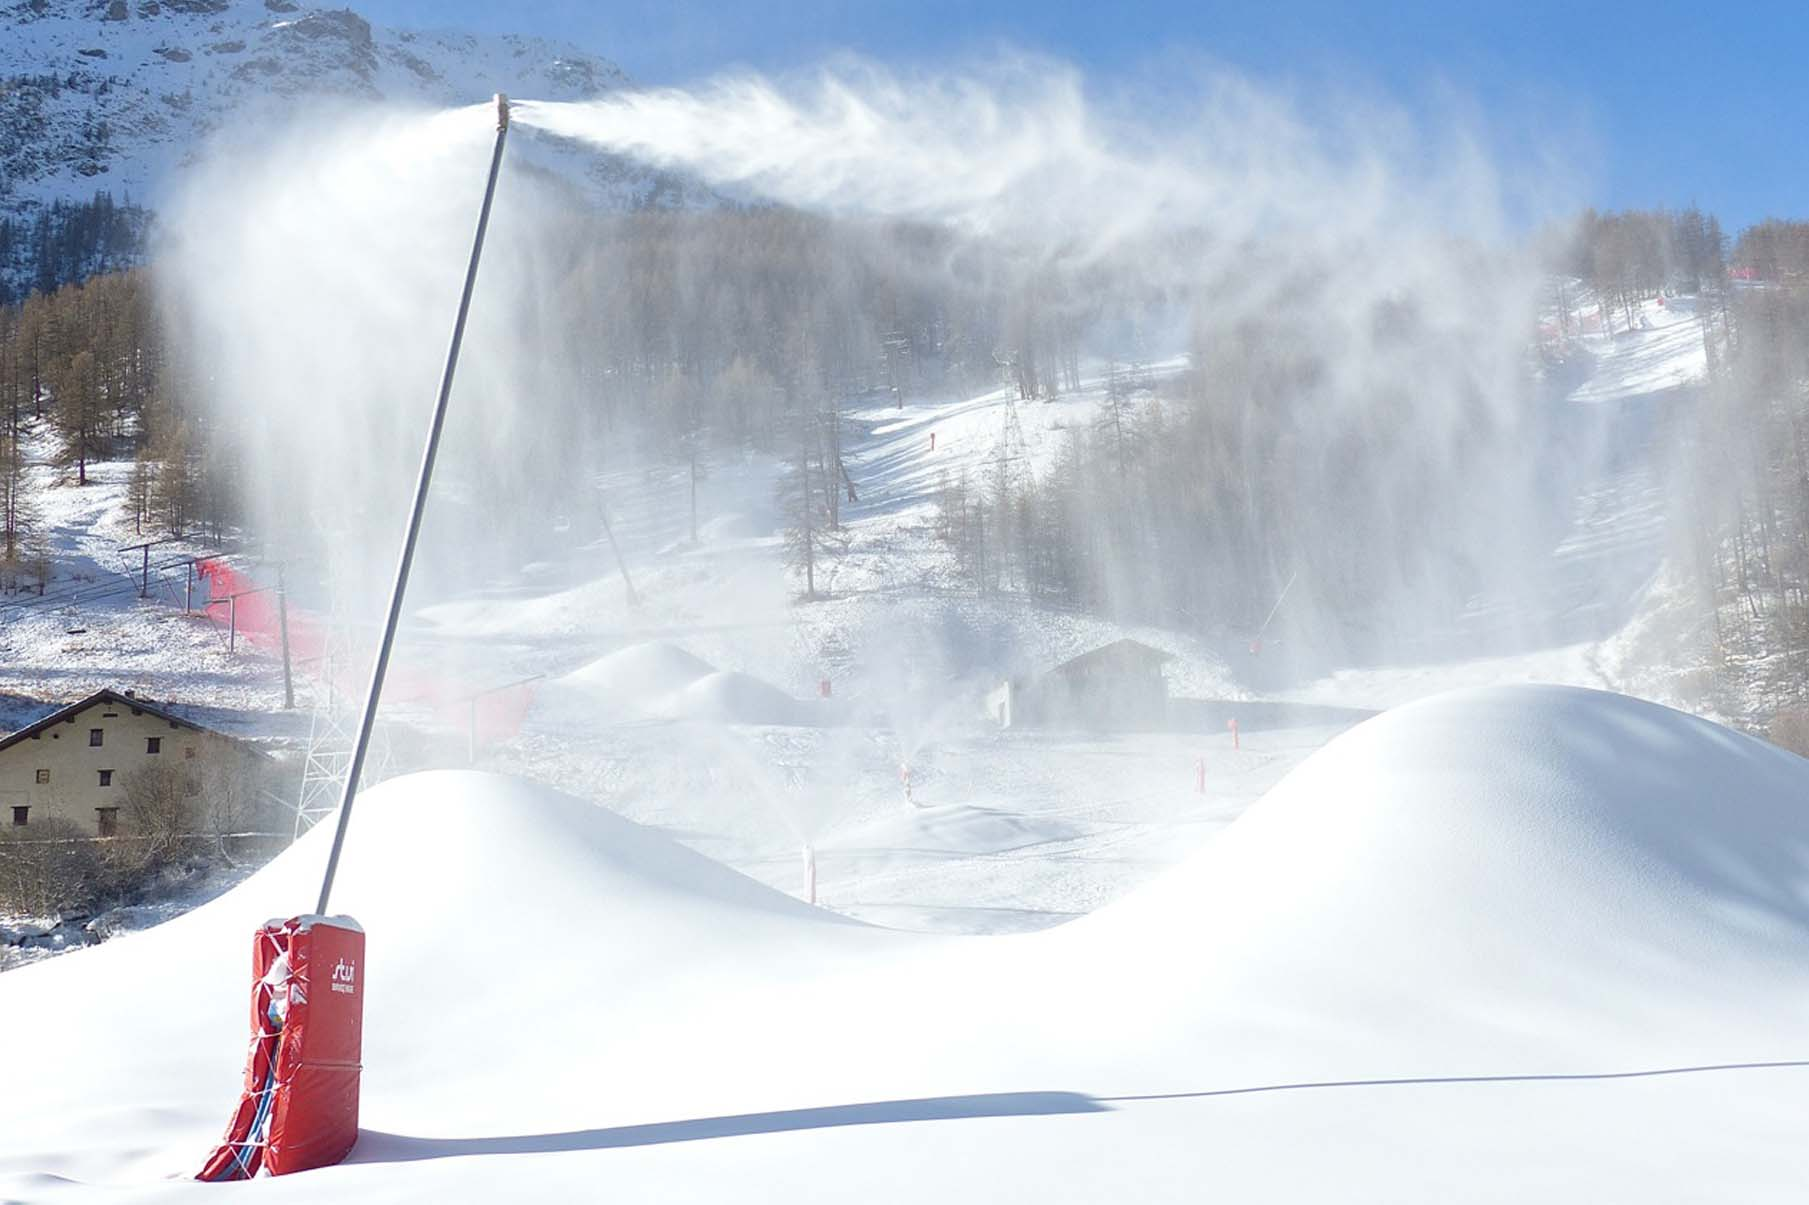 Val d'Isere snow